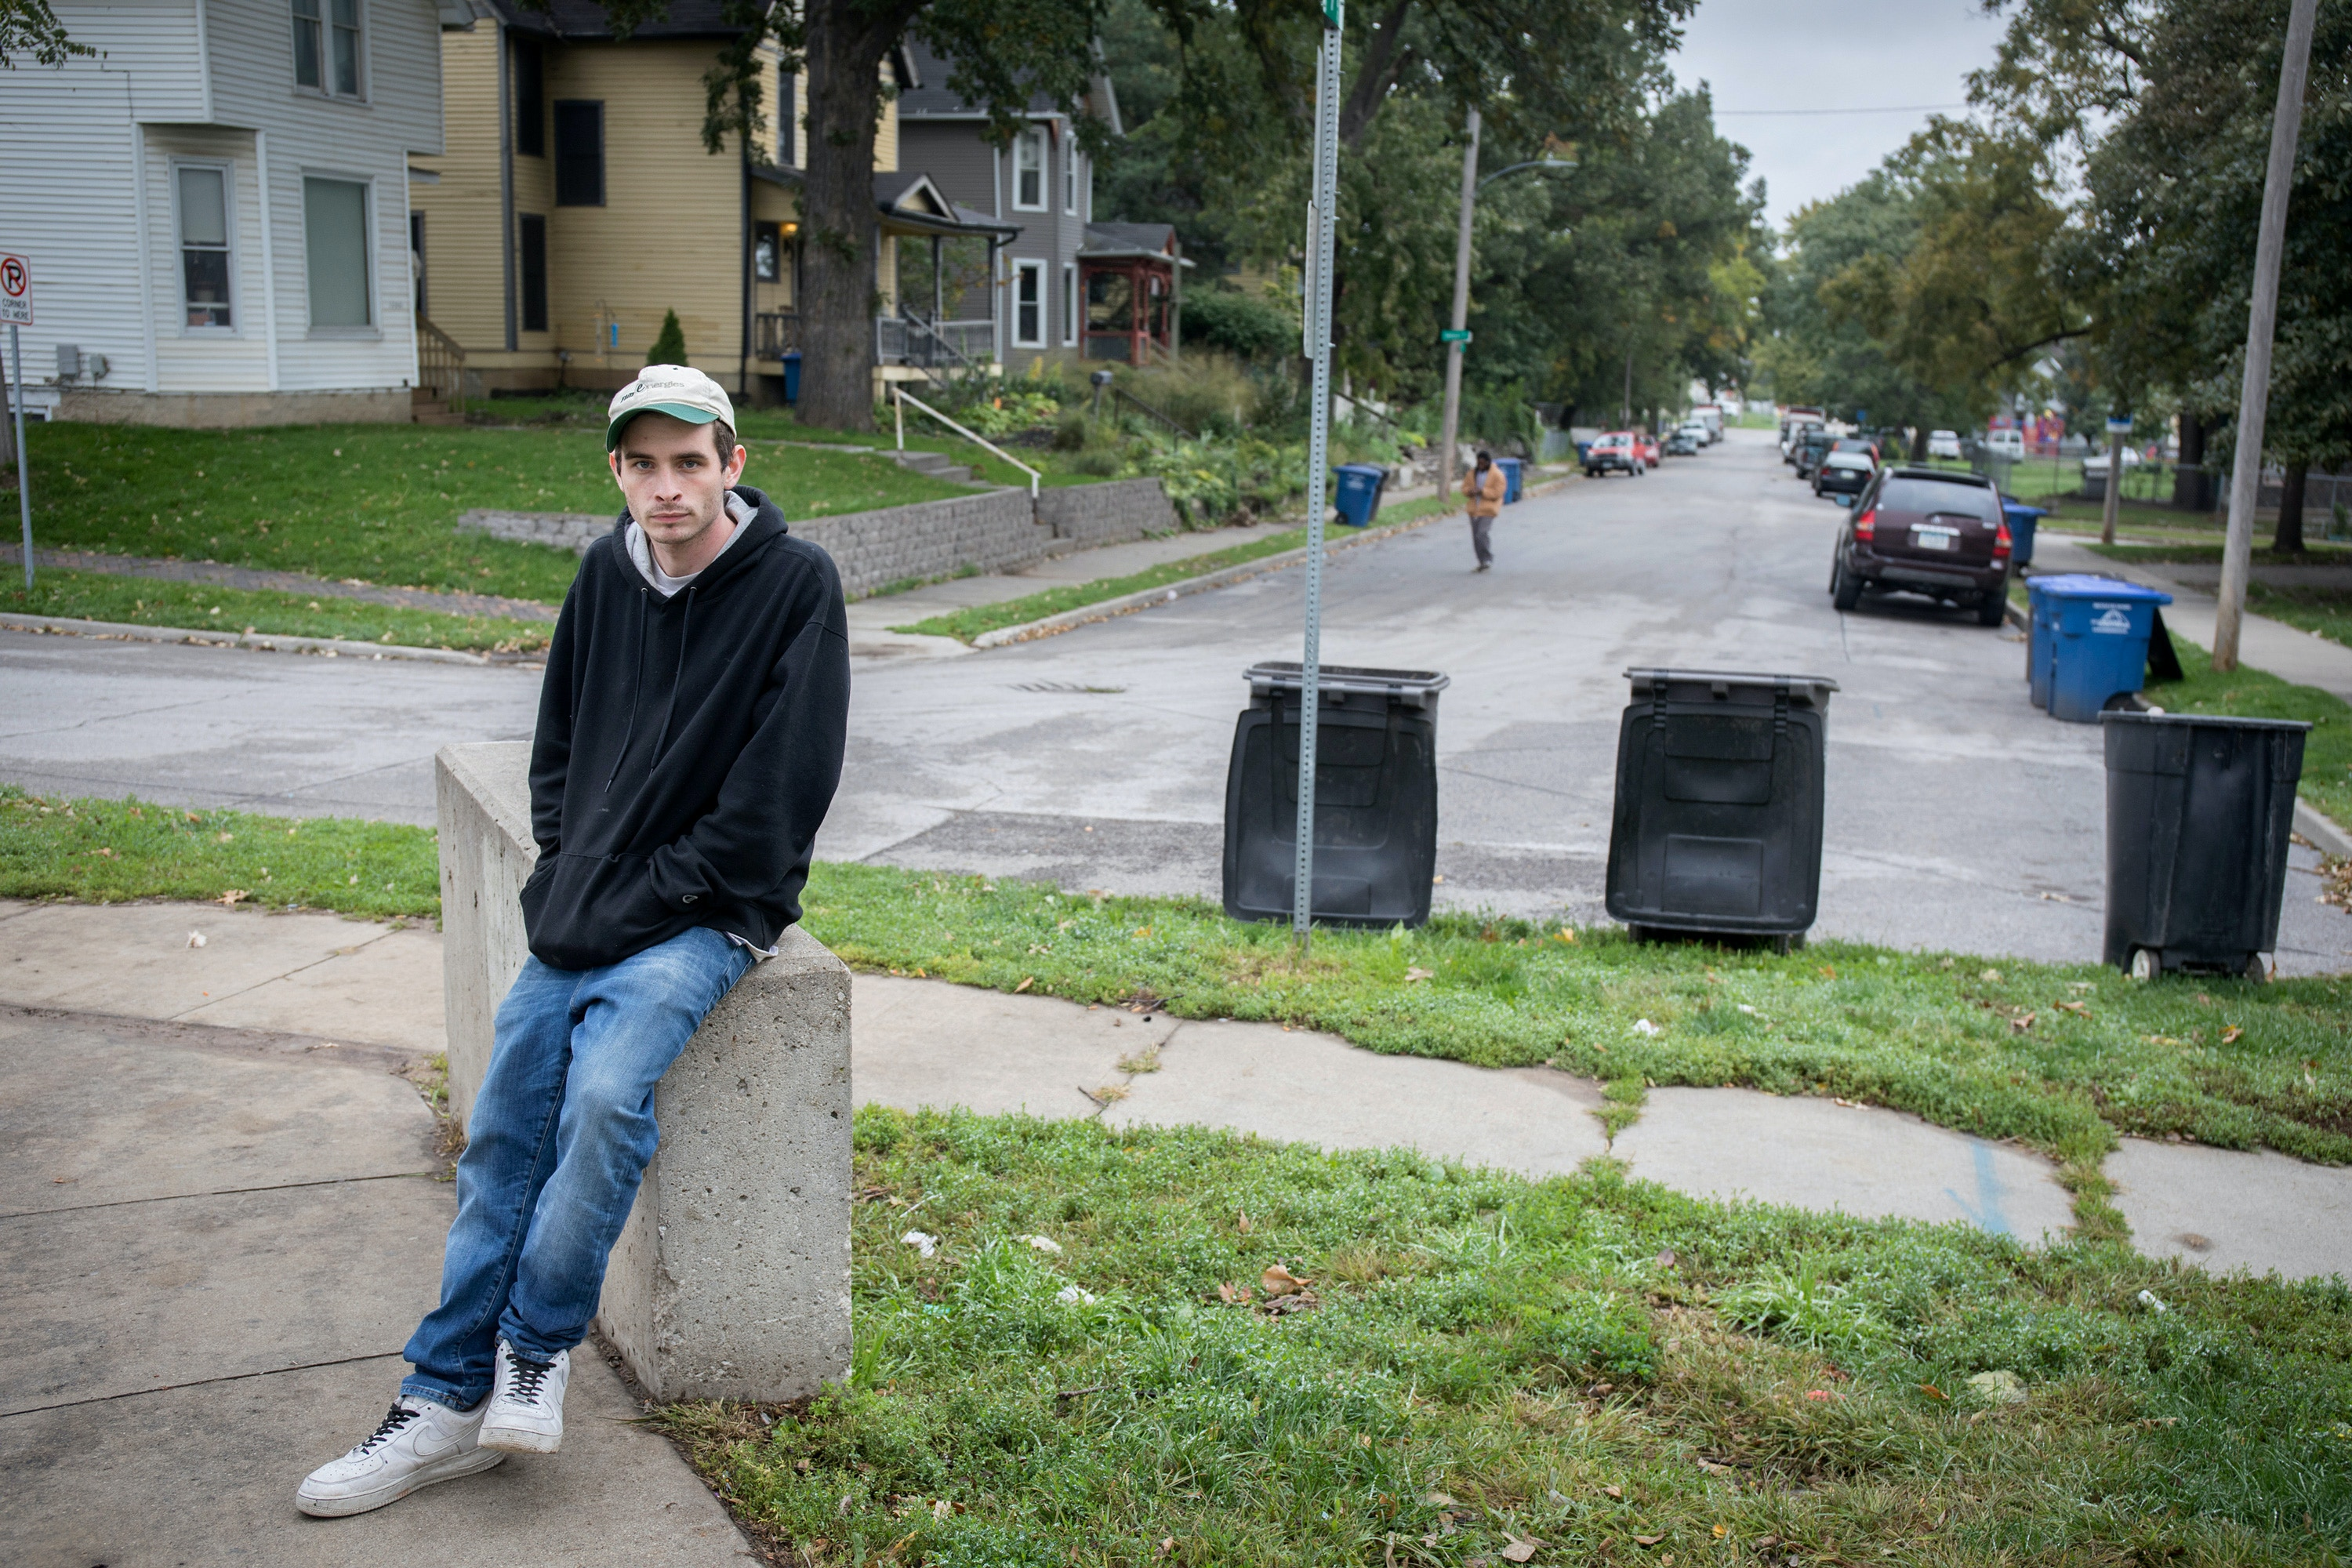 Jesse Horne stands in front of a house occupied by Catholic Workers on Oct. 5, 2018, in Des Moines, Iowa. He lived there but was kicked out of after being accused of being an infiltrator of the anti-Dakota Access pipeline movement. After being thrown out, Jess was homeless and often walked around the neighborhood near downton Des Moines, Iowa. (Rachel Mummey for The Intercept).